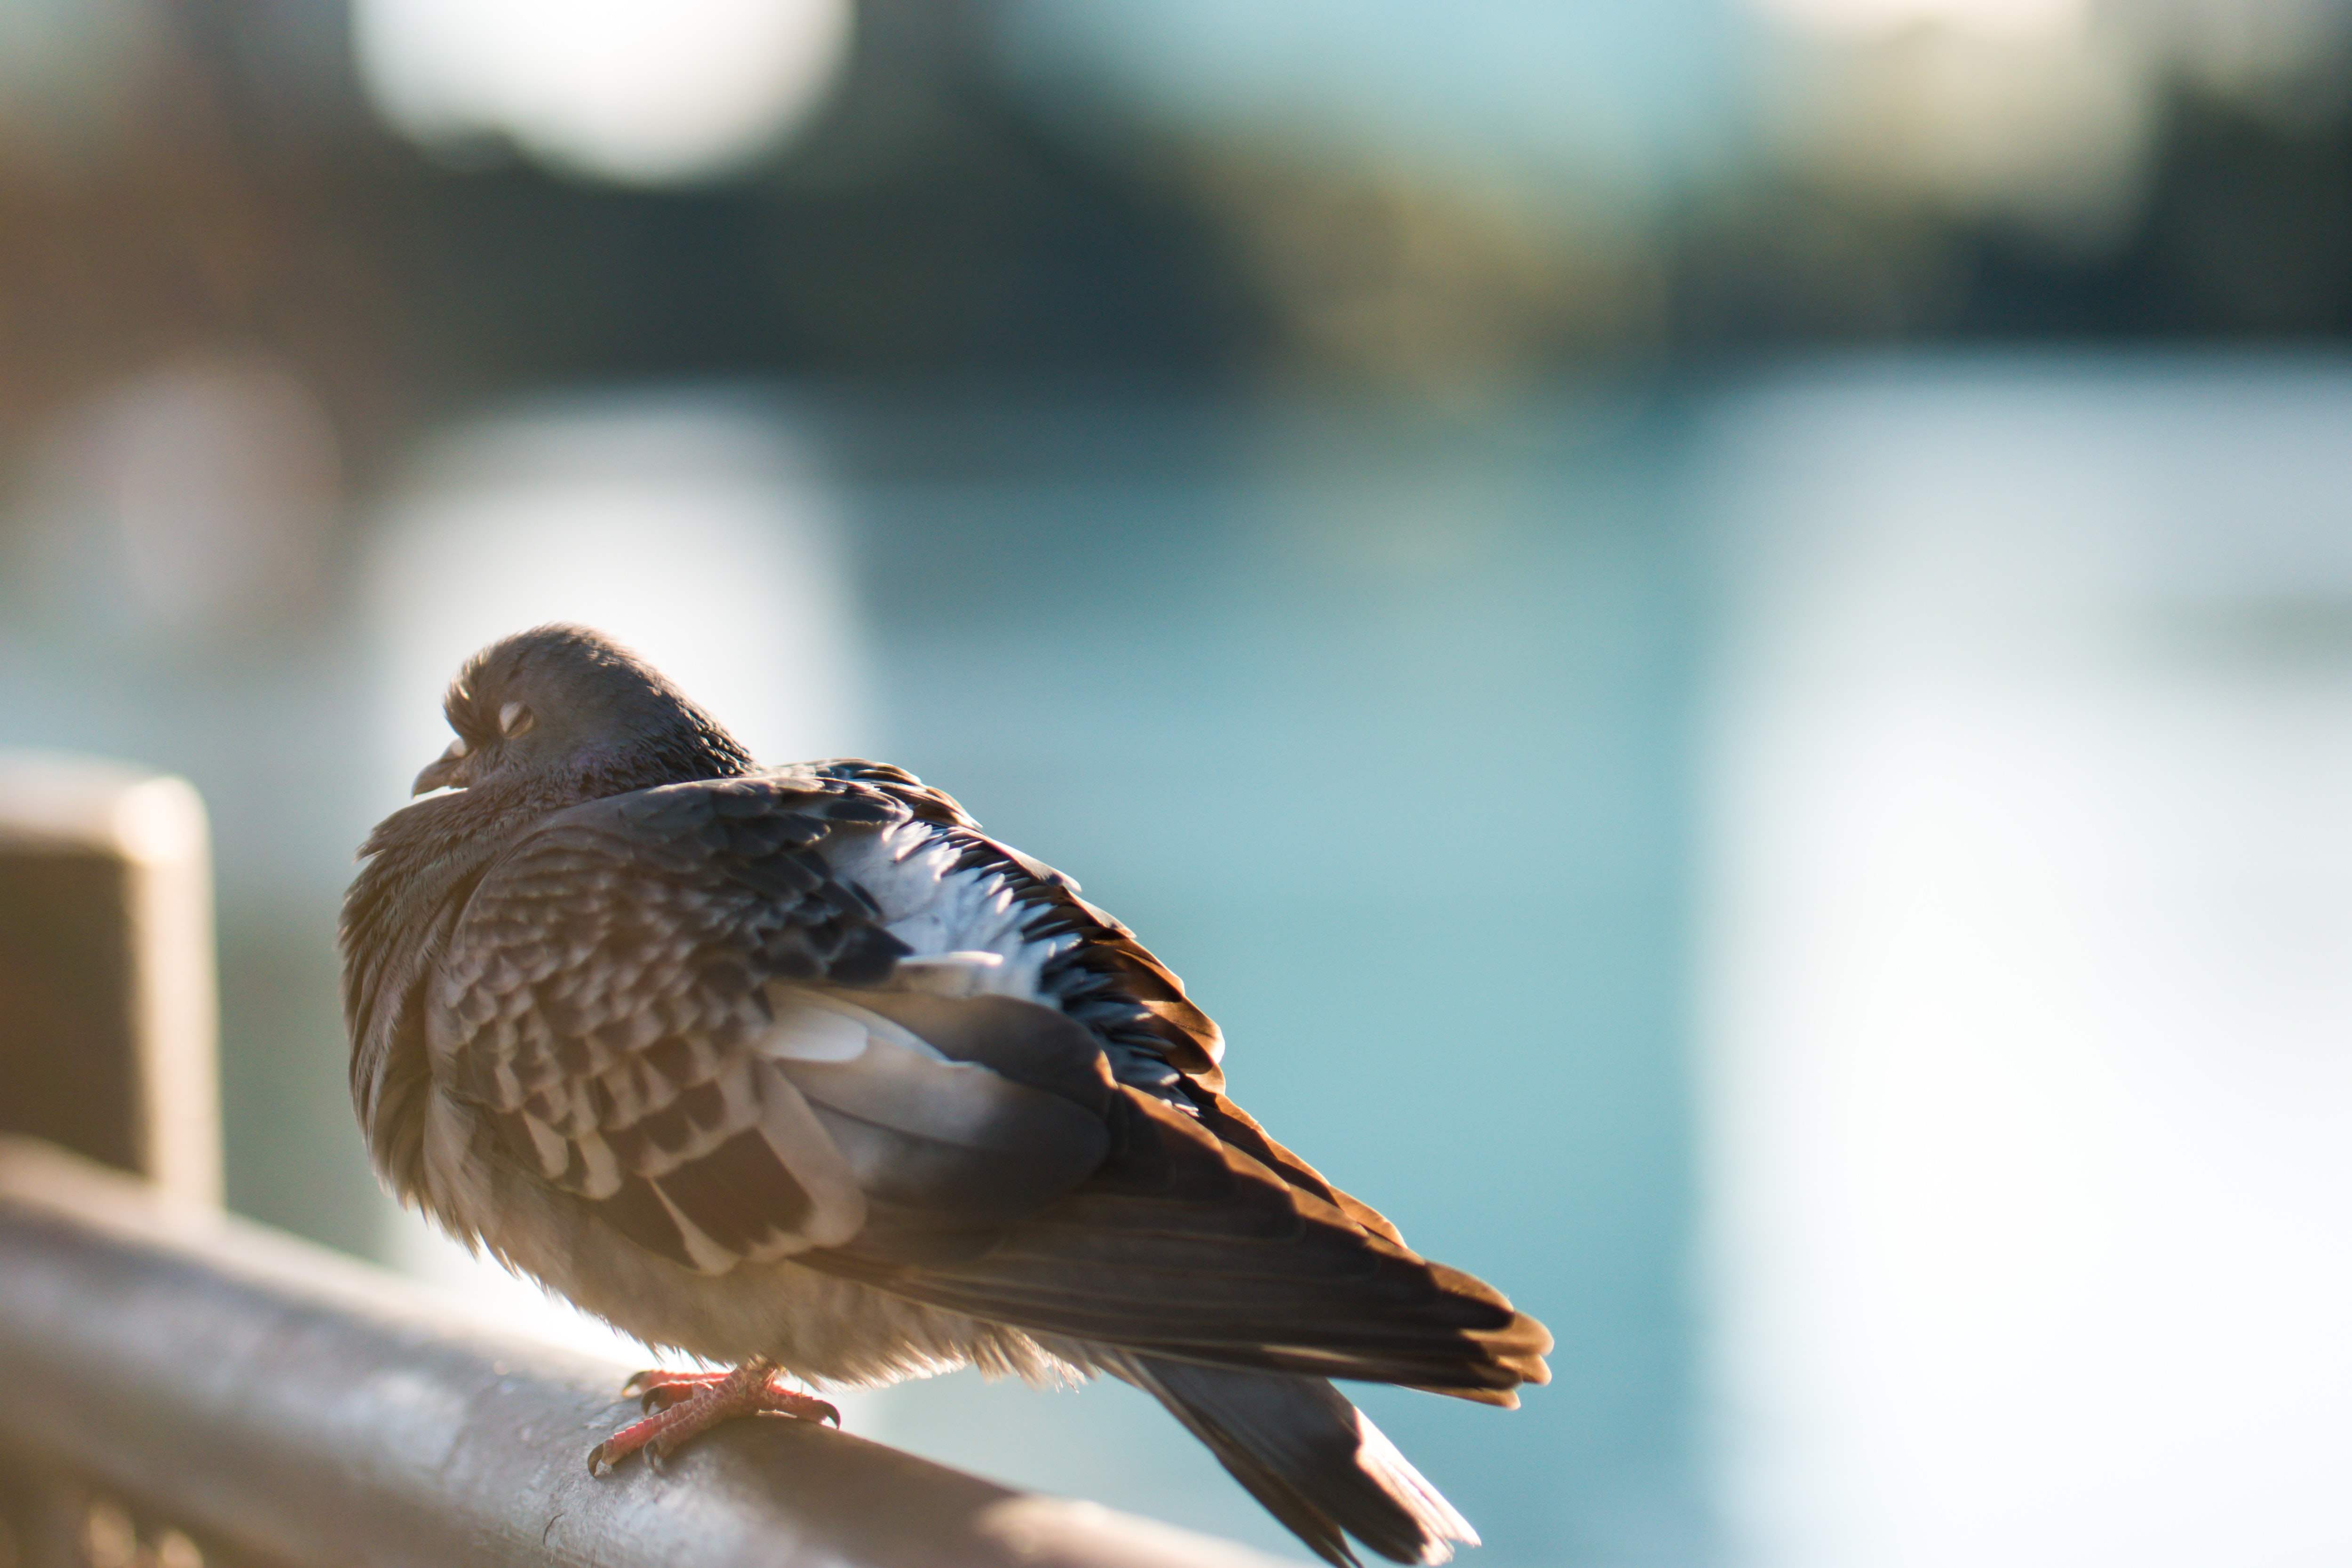 Pigeon resting on a railing on a sunny day